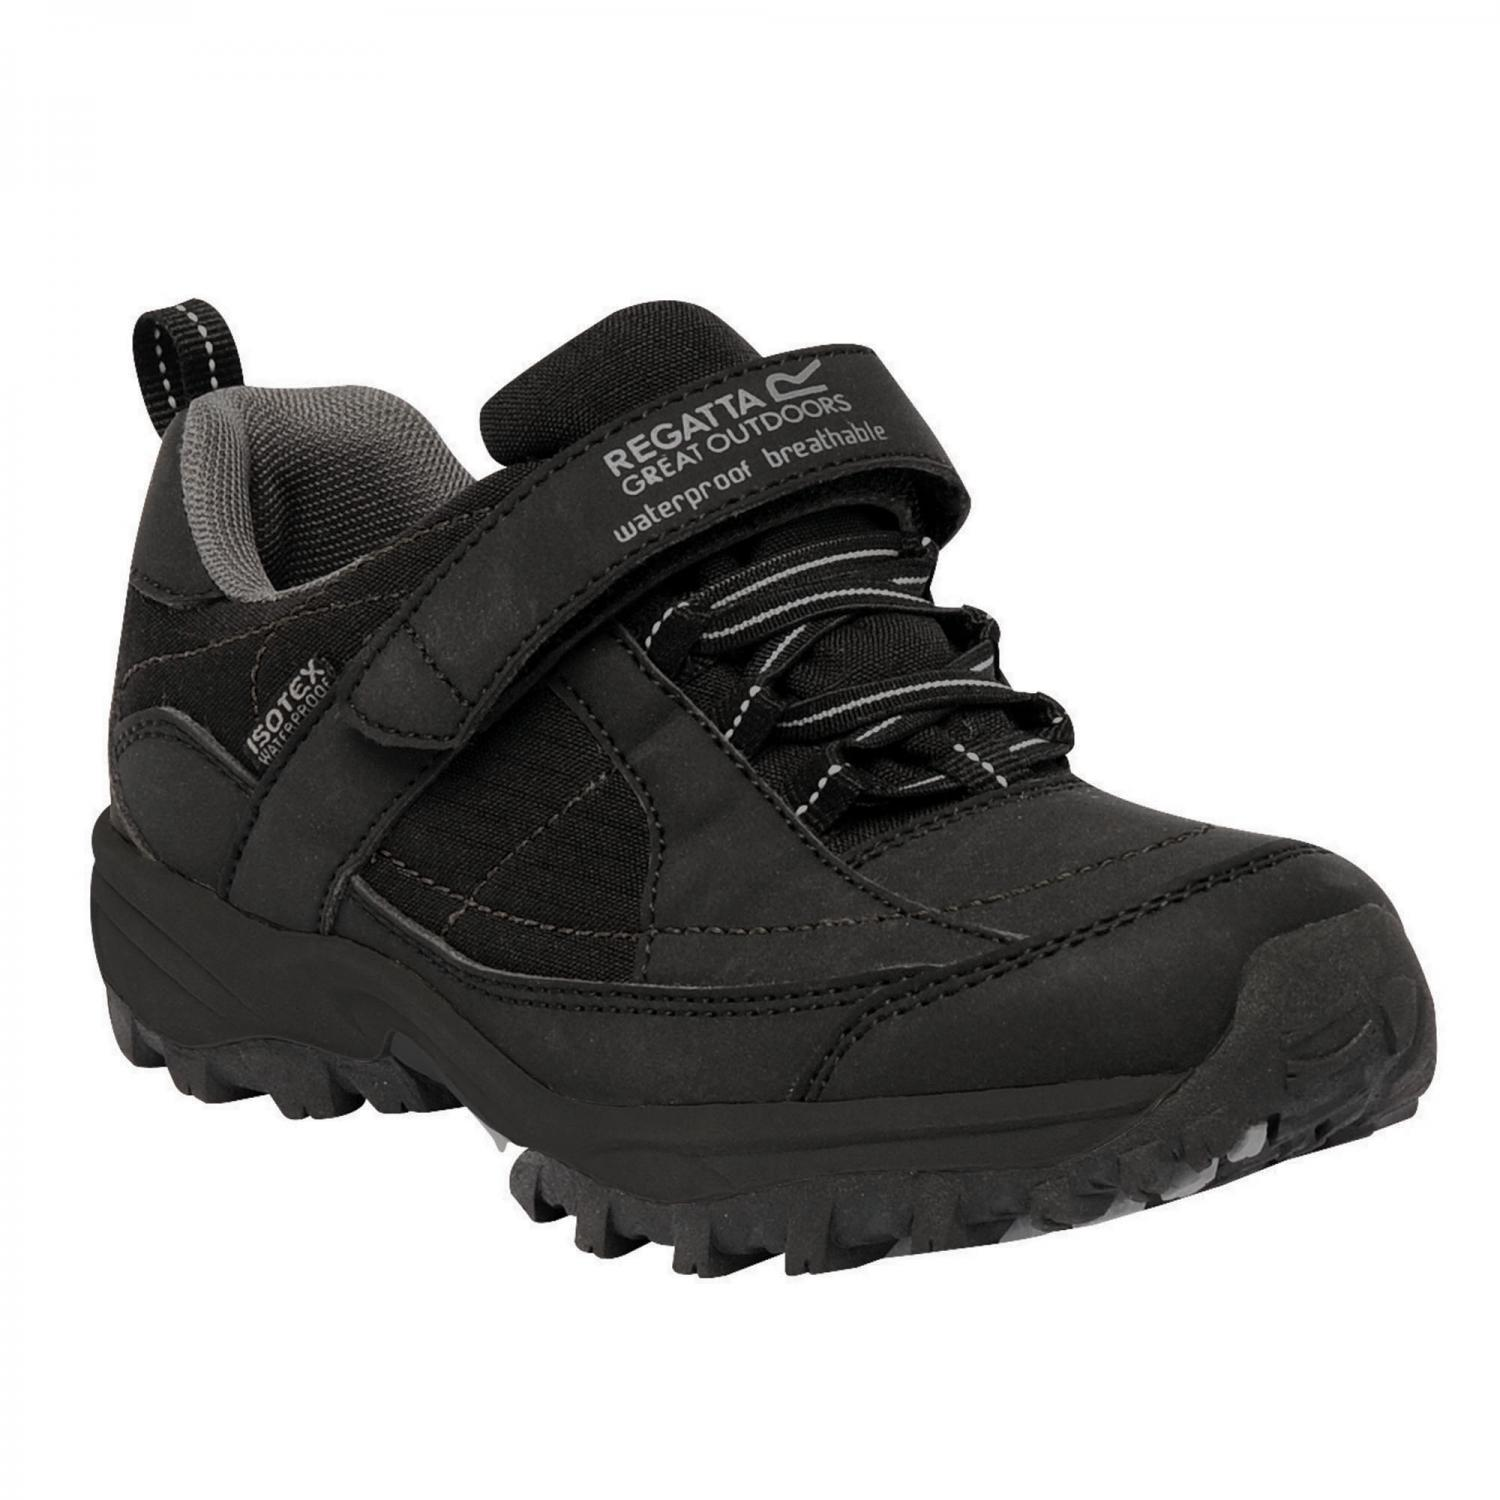 Shoes Boy Trailspace Low Junior Trail Shoes Black Pigeon